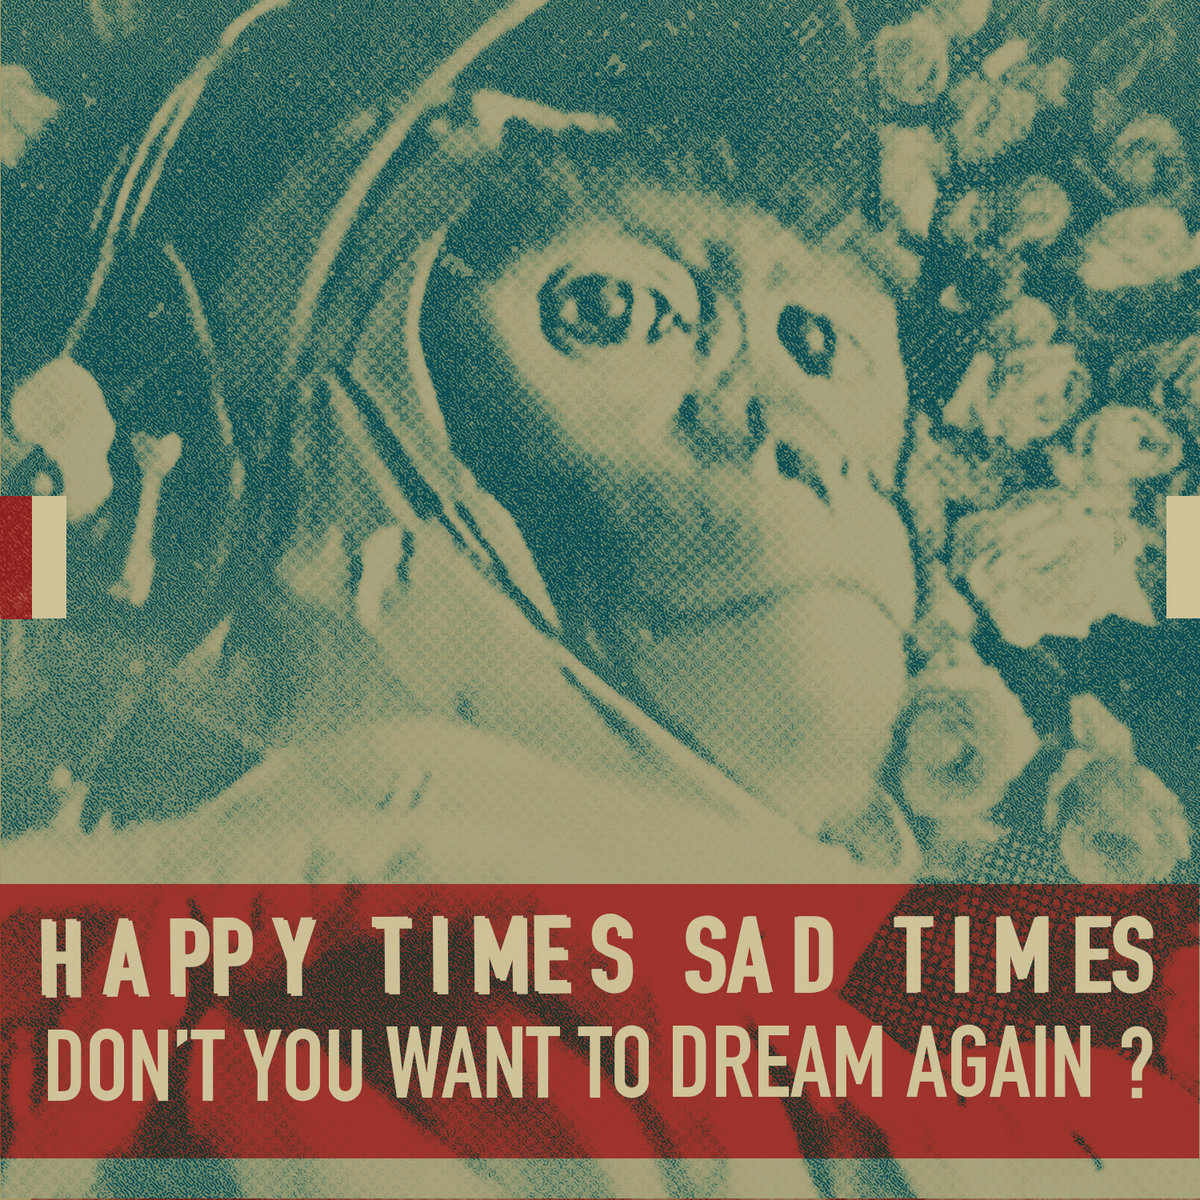 Mostly Cloudy | happy times sad times